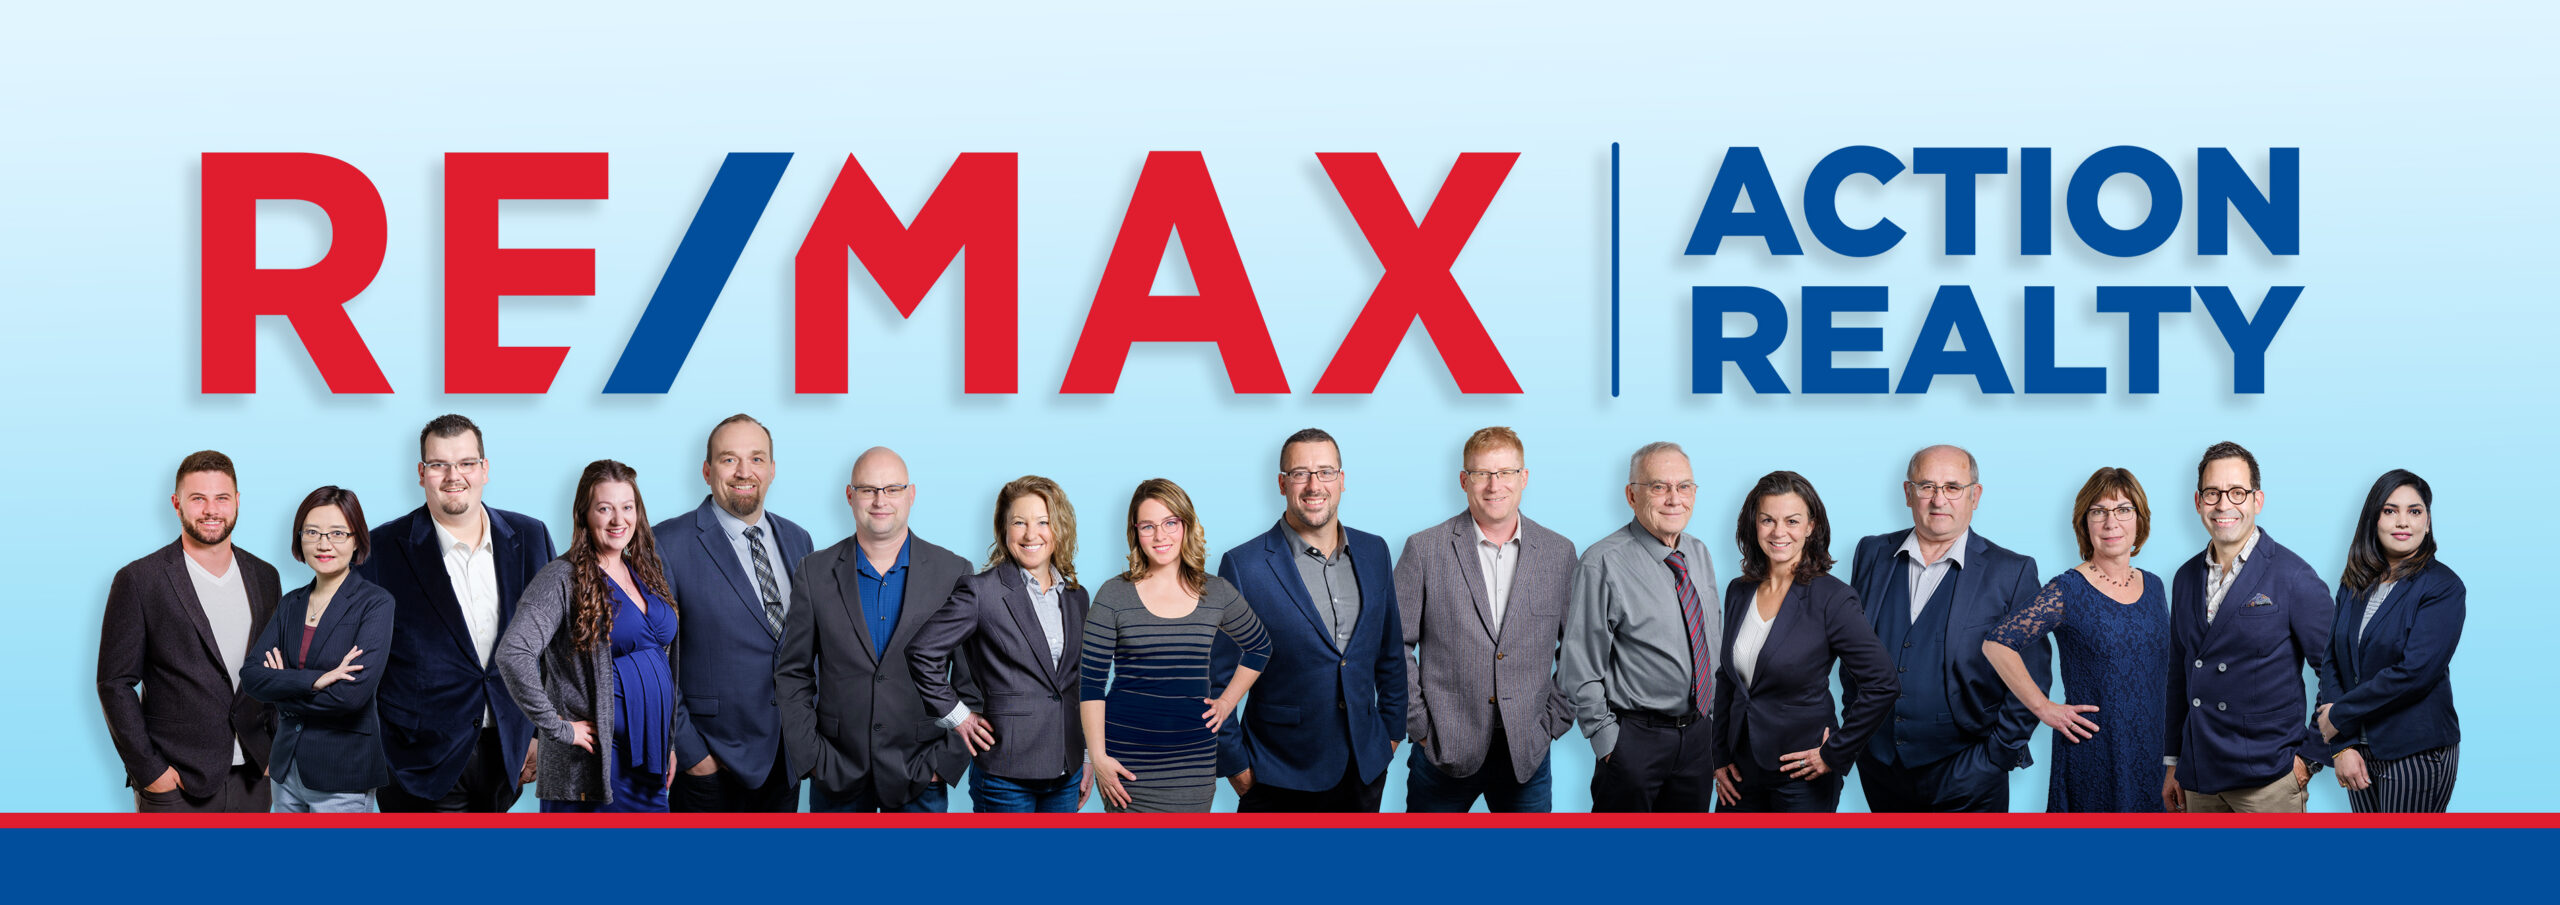 ReMax_Group2021